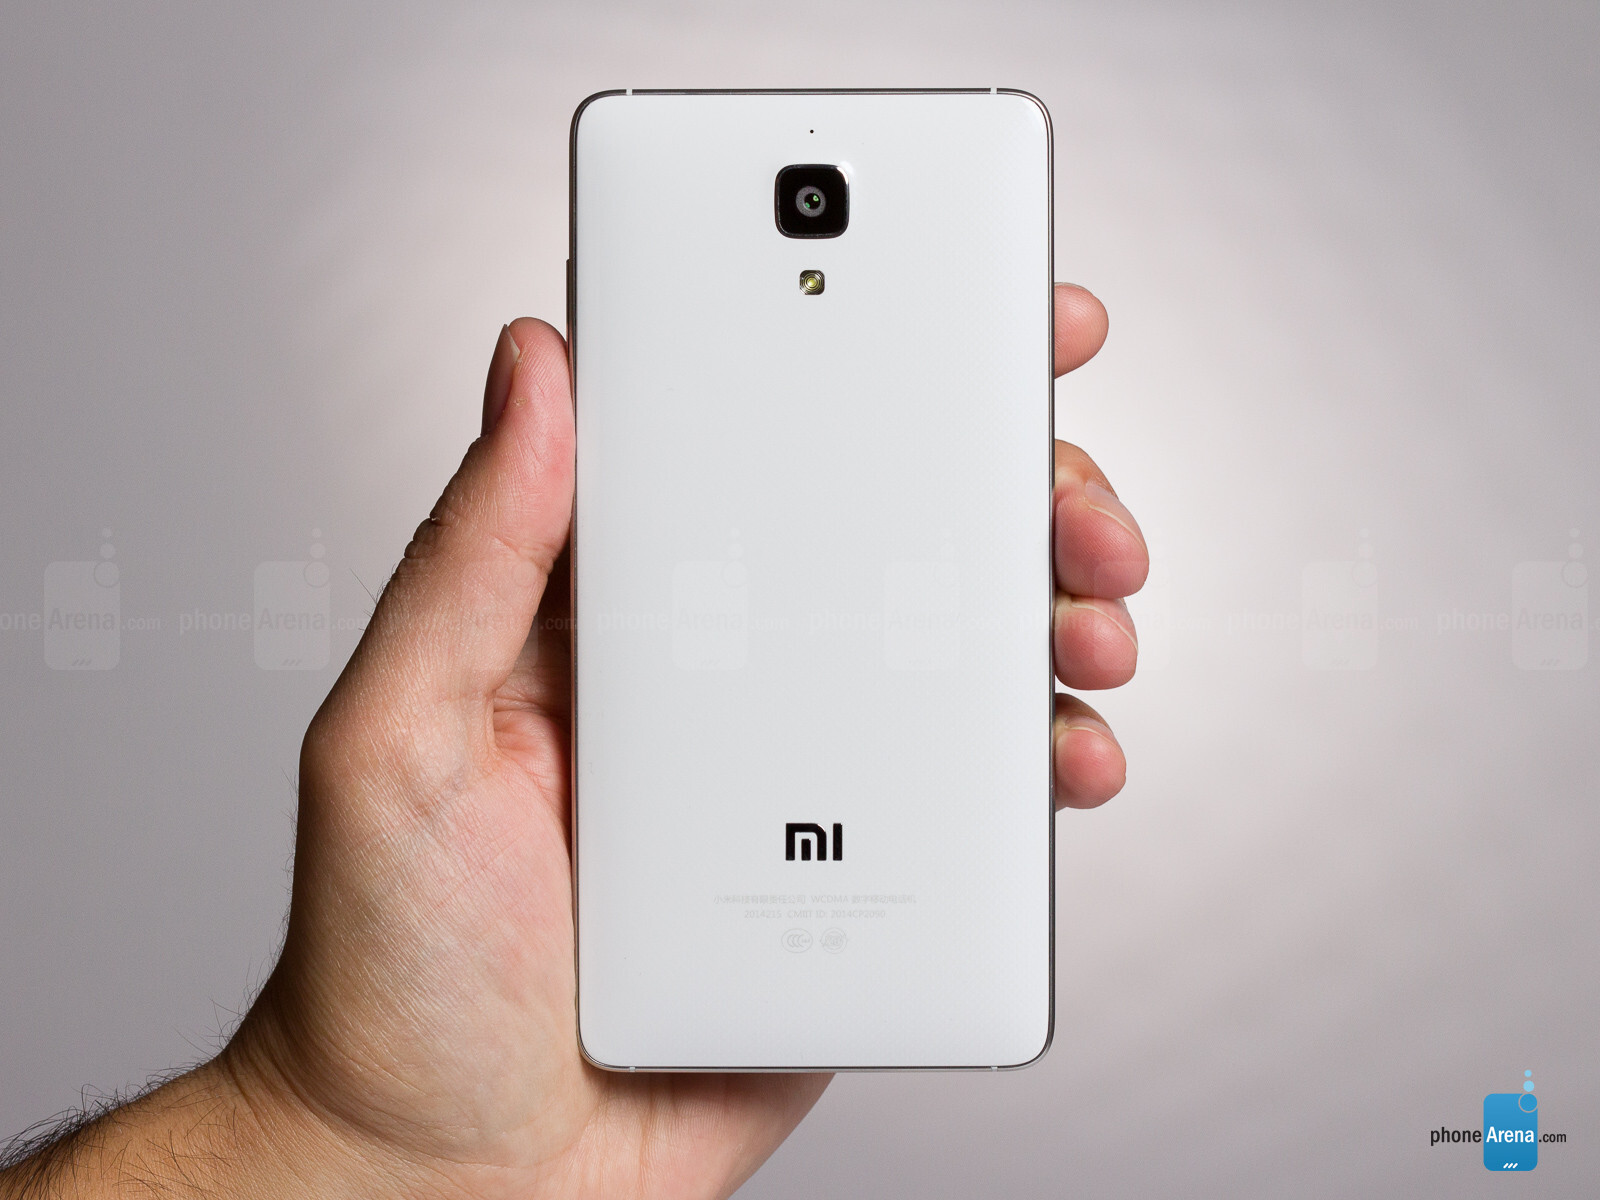 dfbf87dcdaf6f Xiaomi Mi 4 Review. Introduction